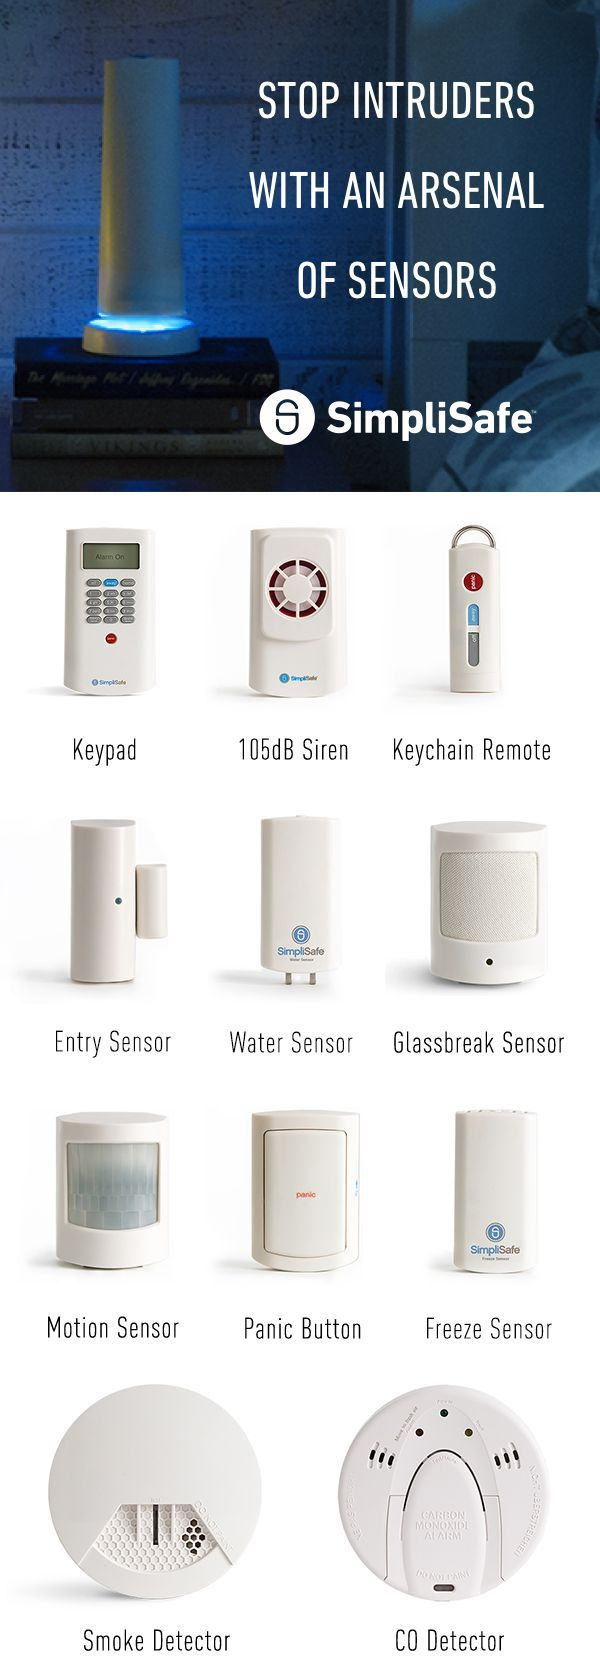 hight resolution of when you choose simplisafe you get a custom home security system shipped straight to your door within 30 minutes it s set up and your whole apartment is